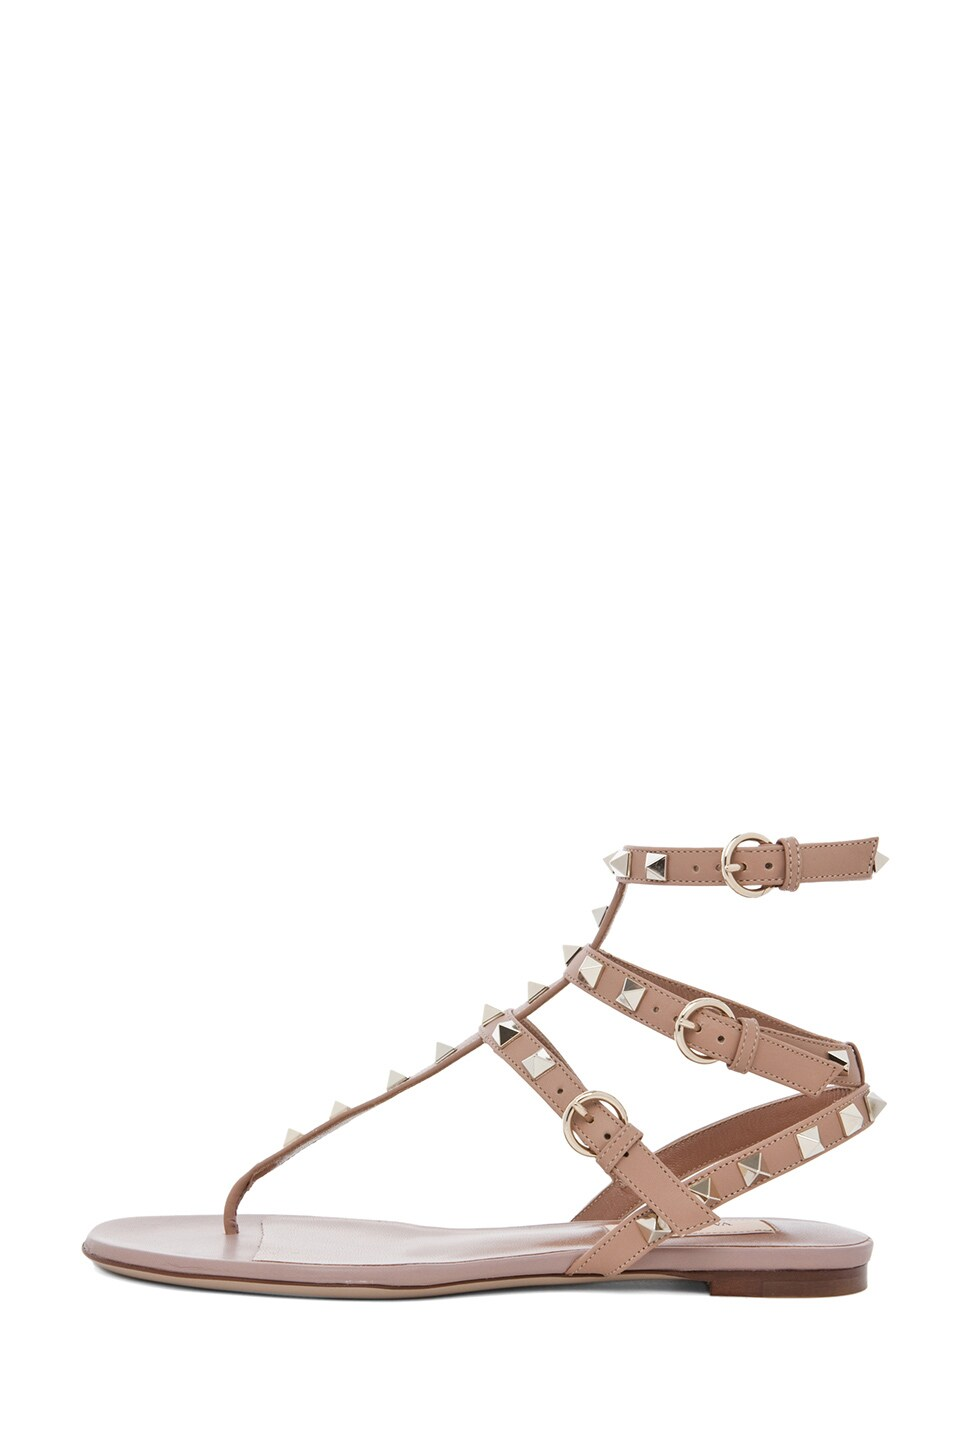 6c2be1c942a8 Image 1 of Valentino Rockstud Leather Gladiator Sandal T.05 in Soft  Hazelnut   Nude